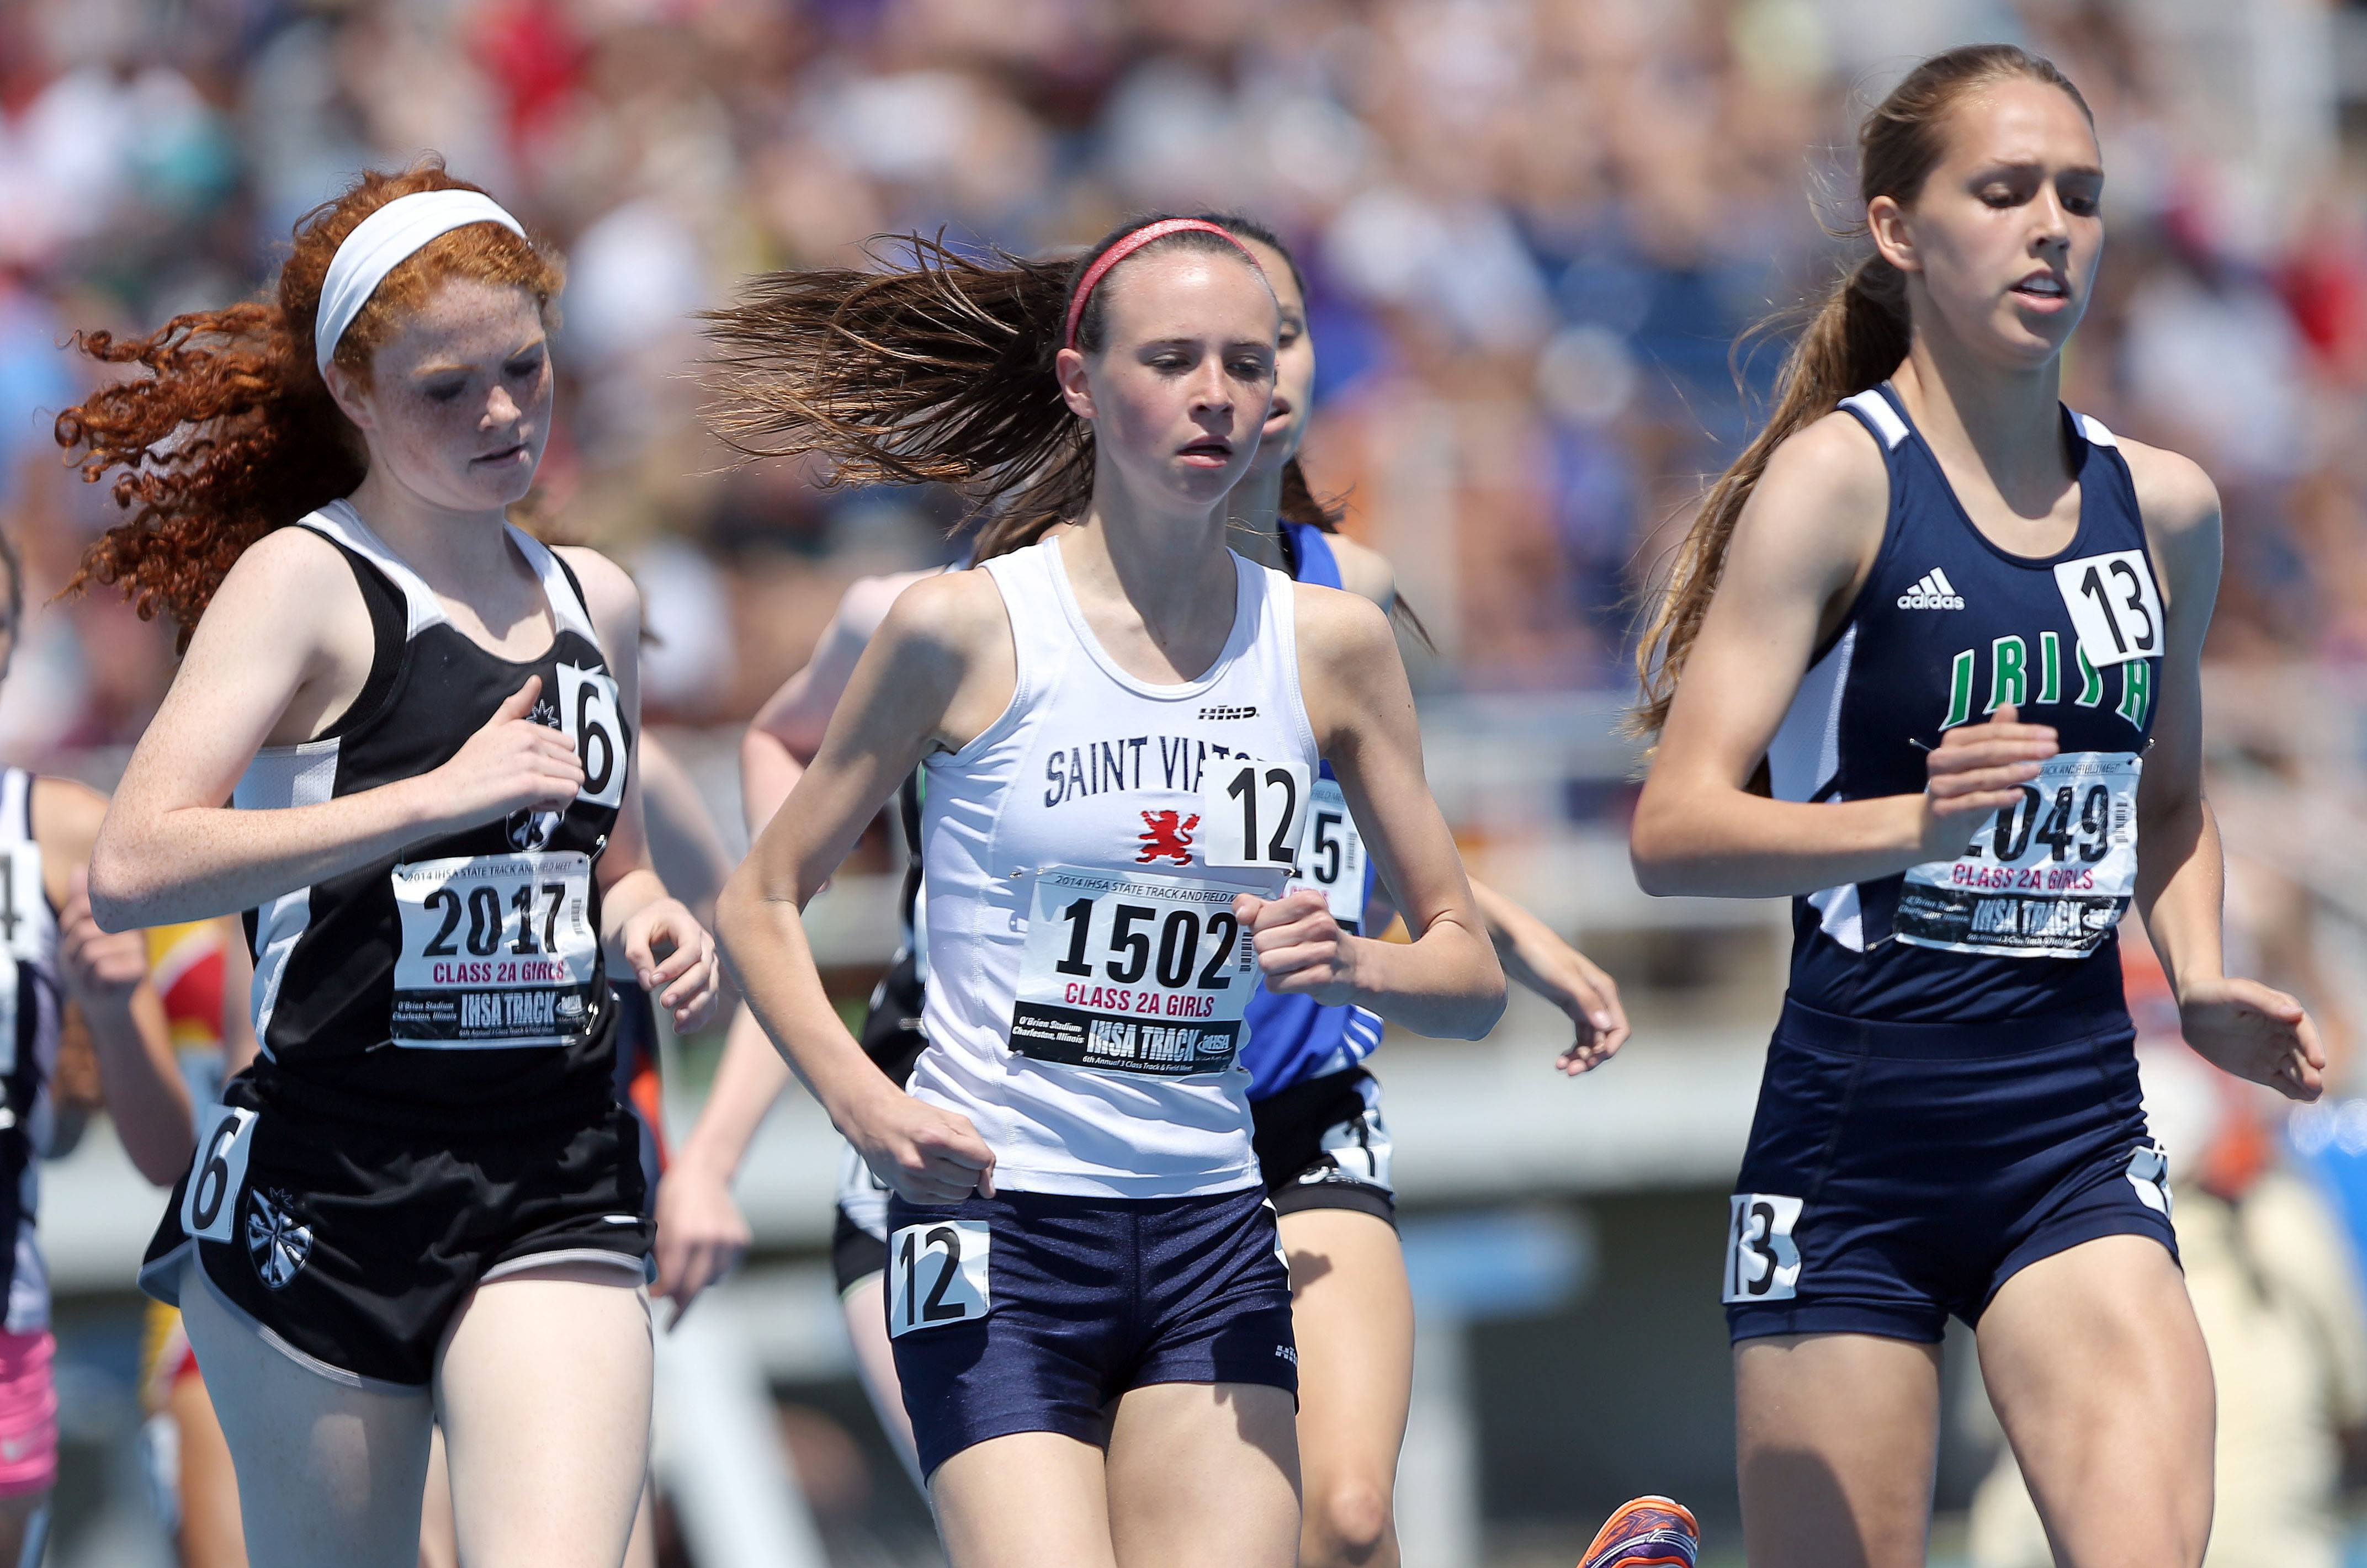 St. Viator's Meghan Carroll, middle, competes in the 1600-meter run during the Class 2A prelims of the girls track and field state meet at Eastern Illinois University in Charleston on Friday.